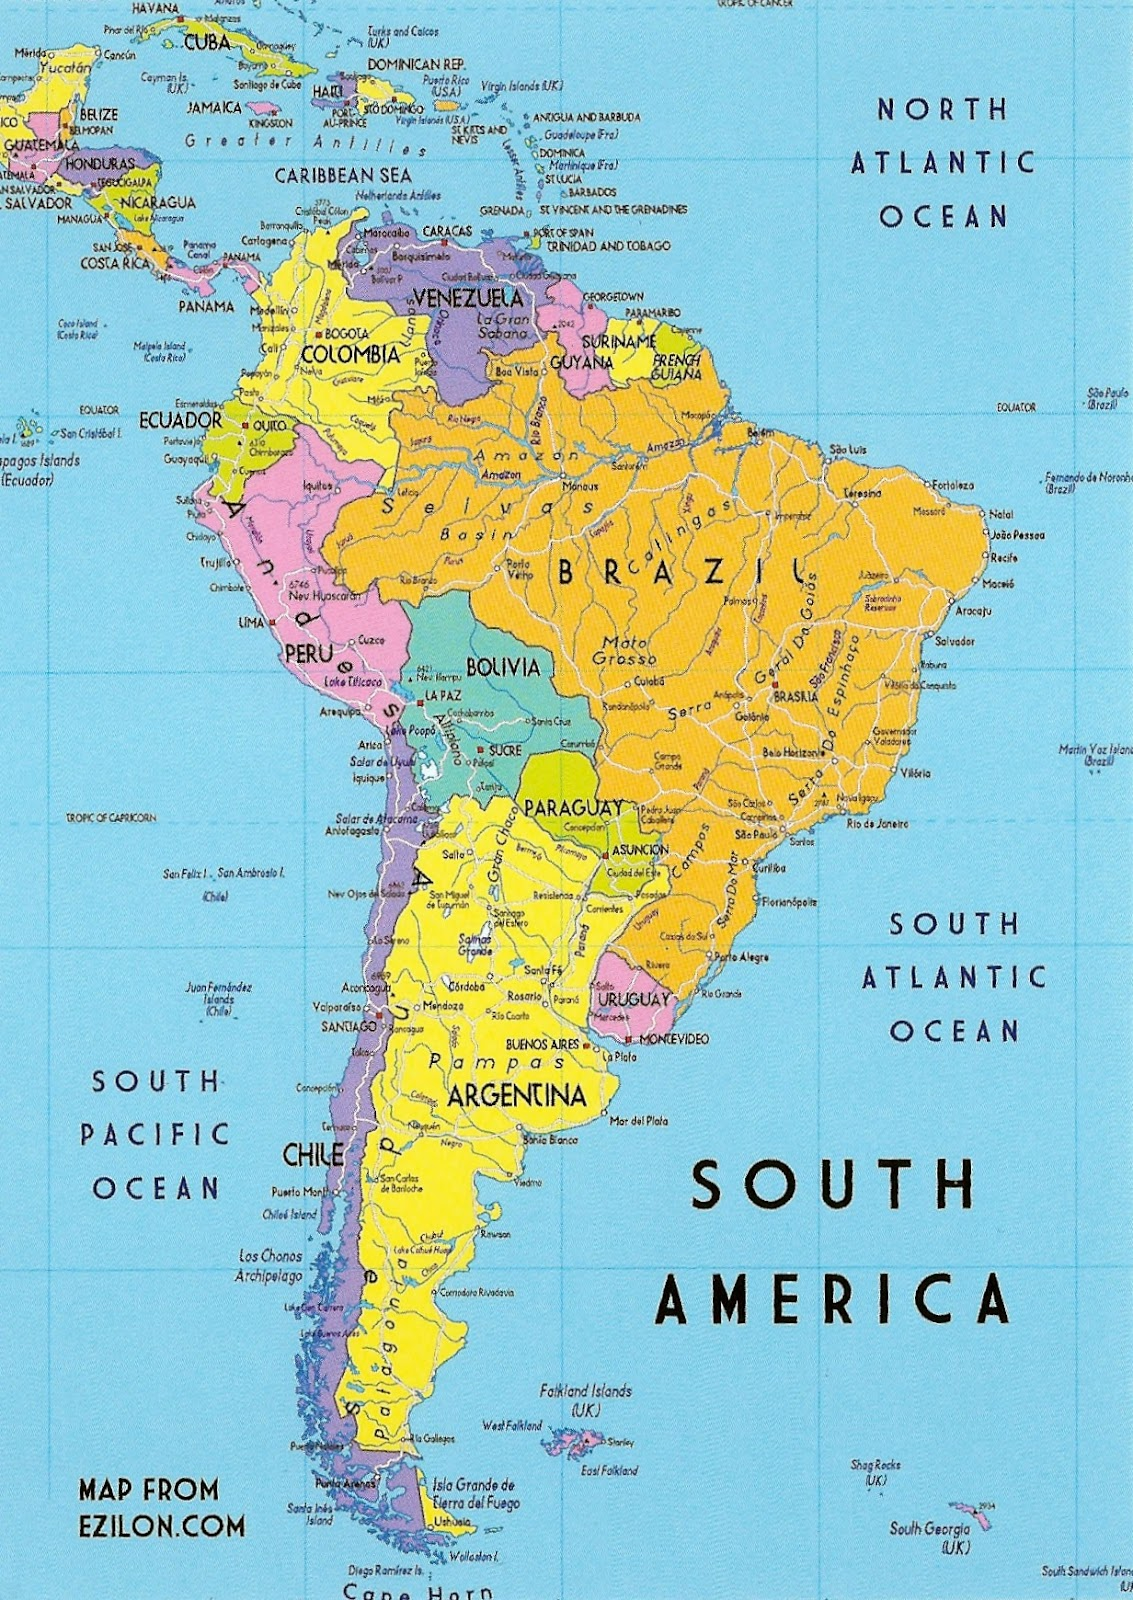 Map Of South America 2017.My Favorite Postcards A Map Of South America